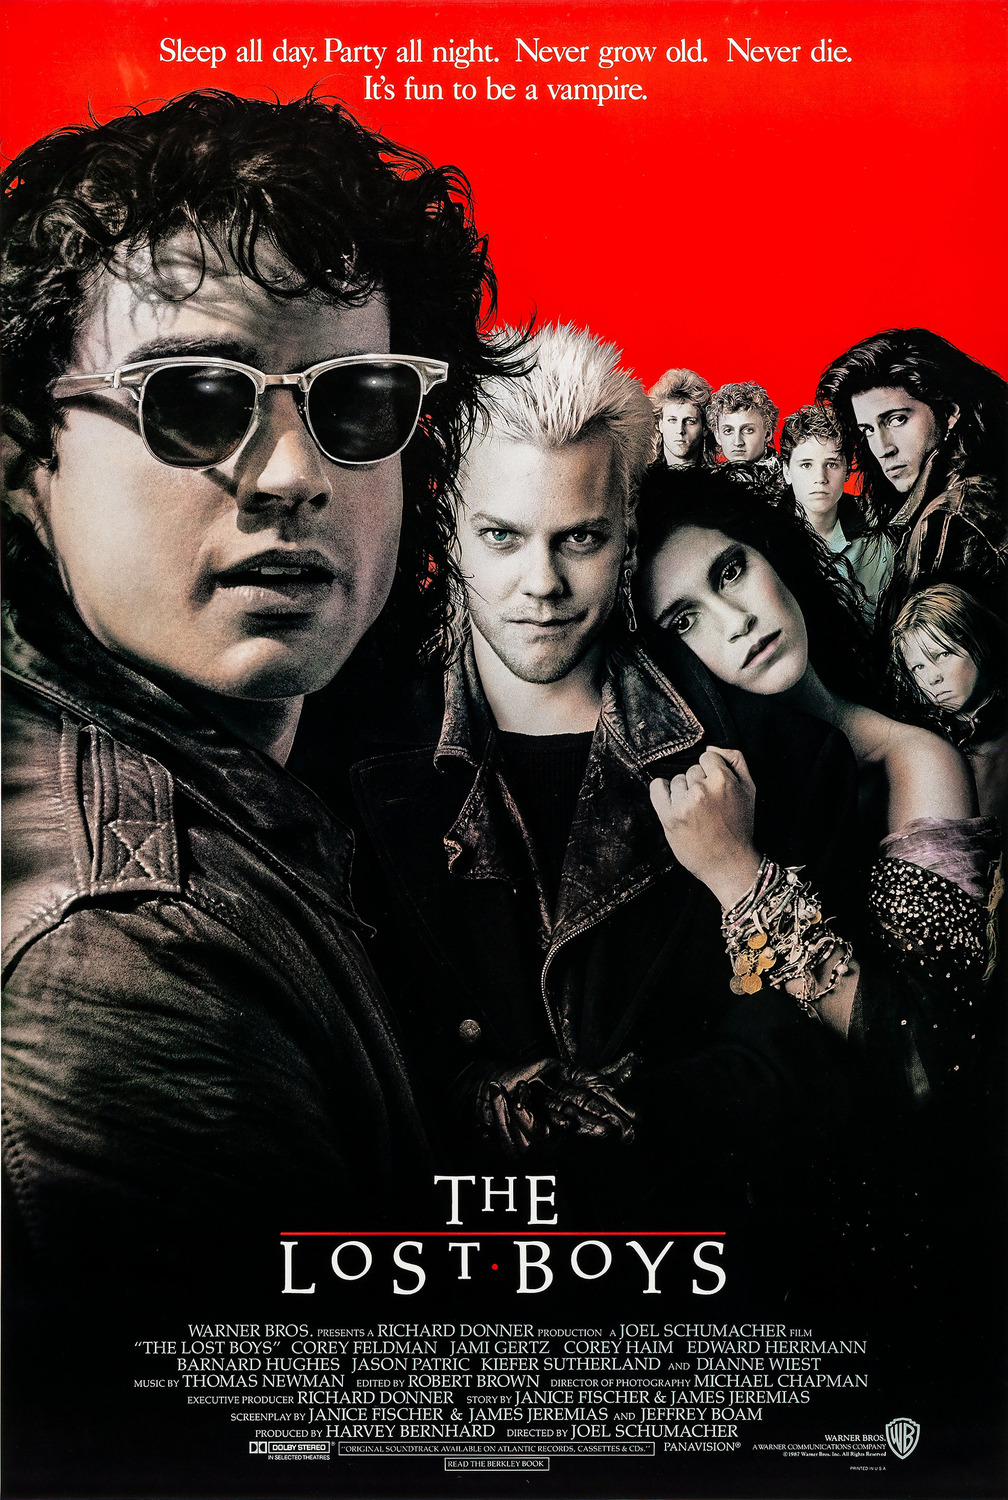 https://i0.wp.com/www.impawards.com/1987/posters/lost_boys_xlg.jpg